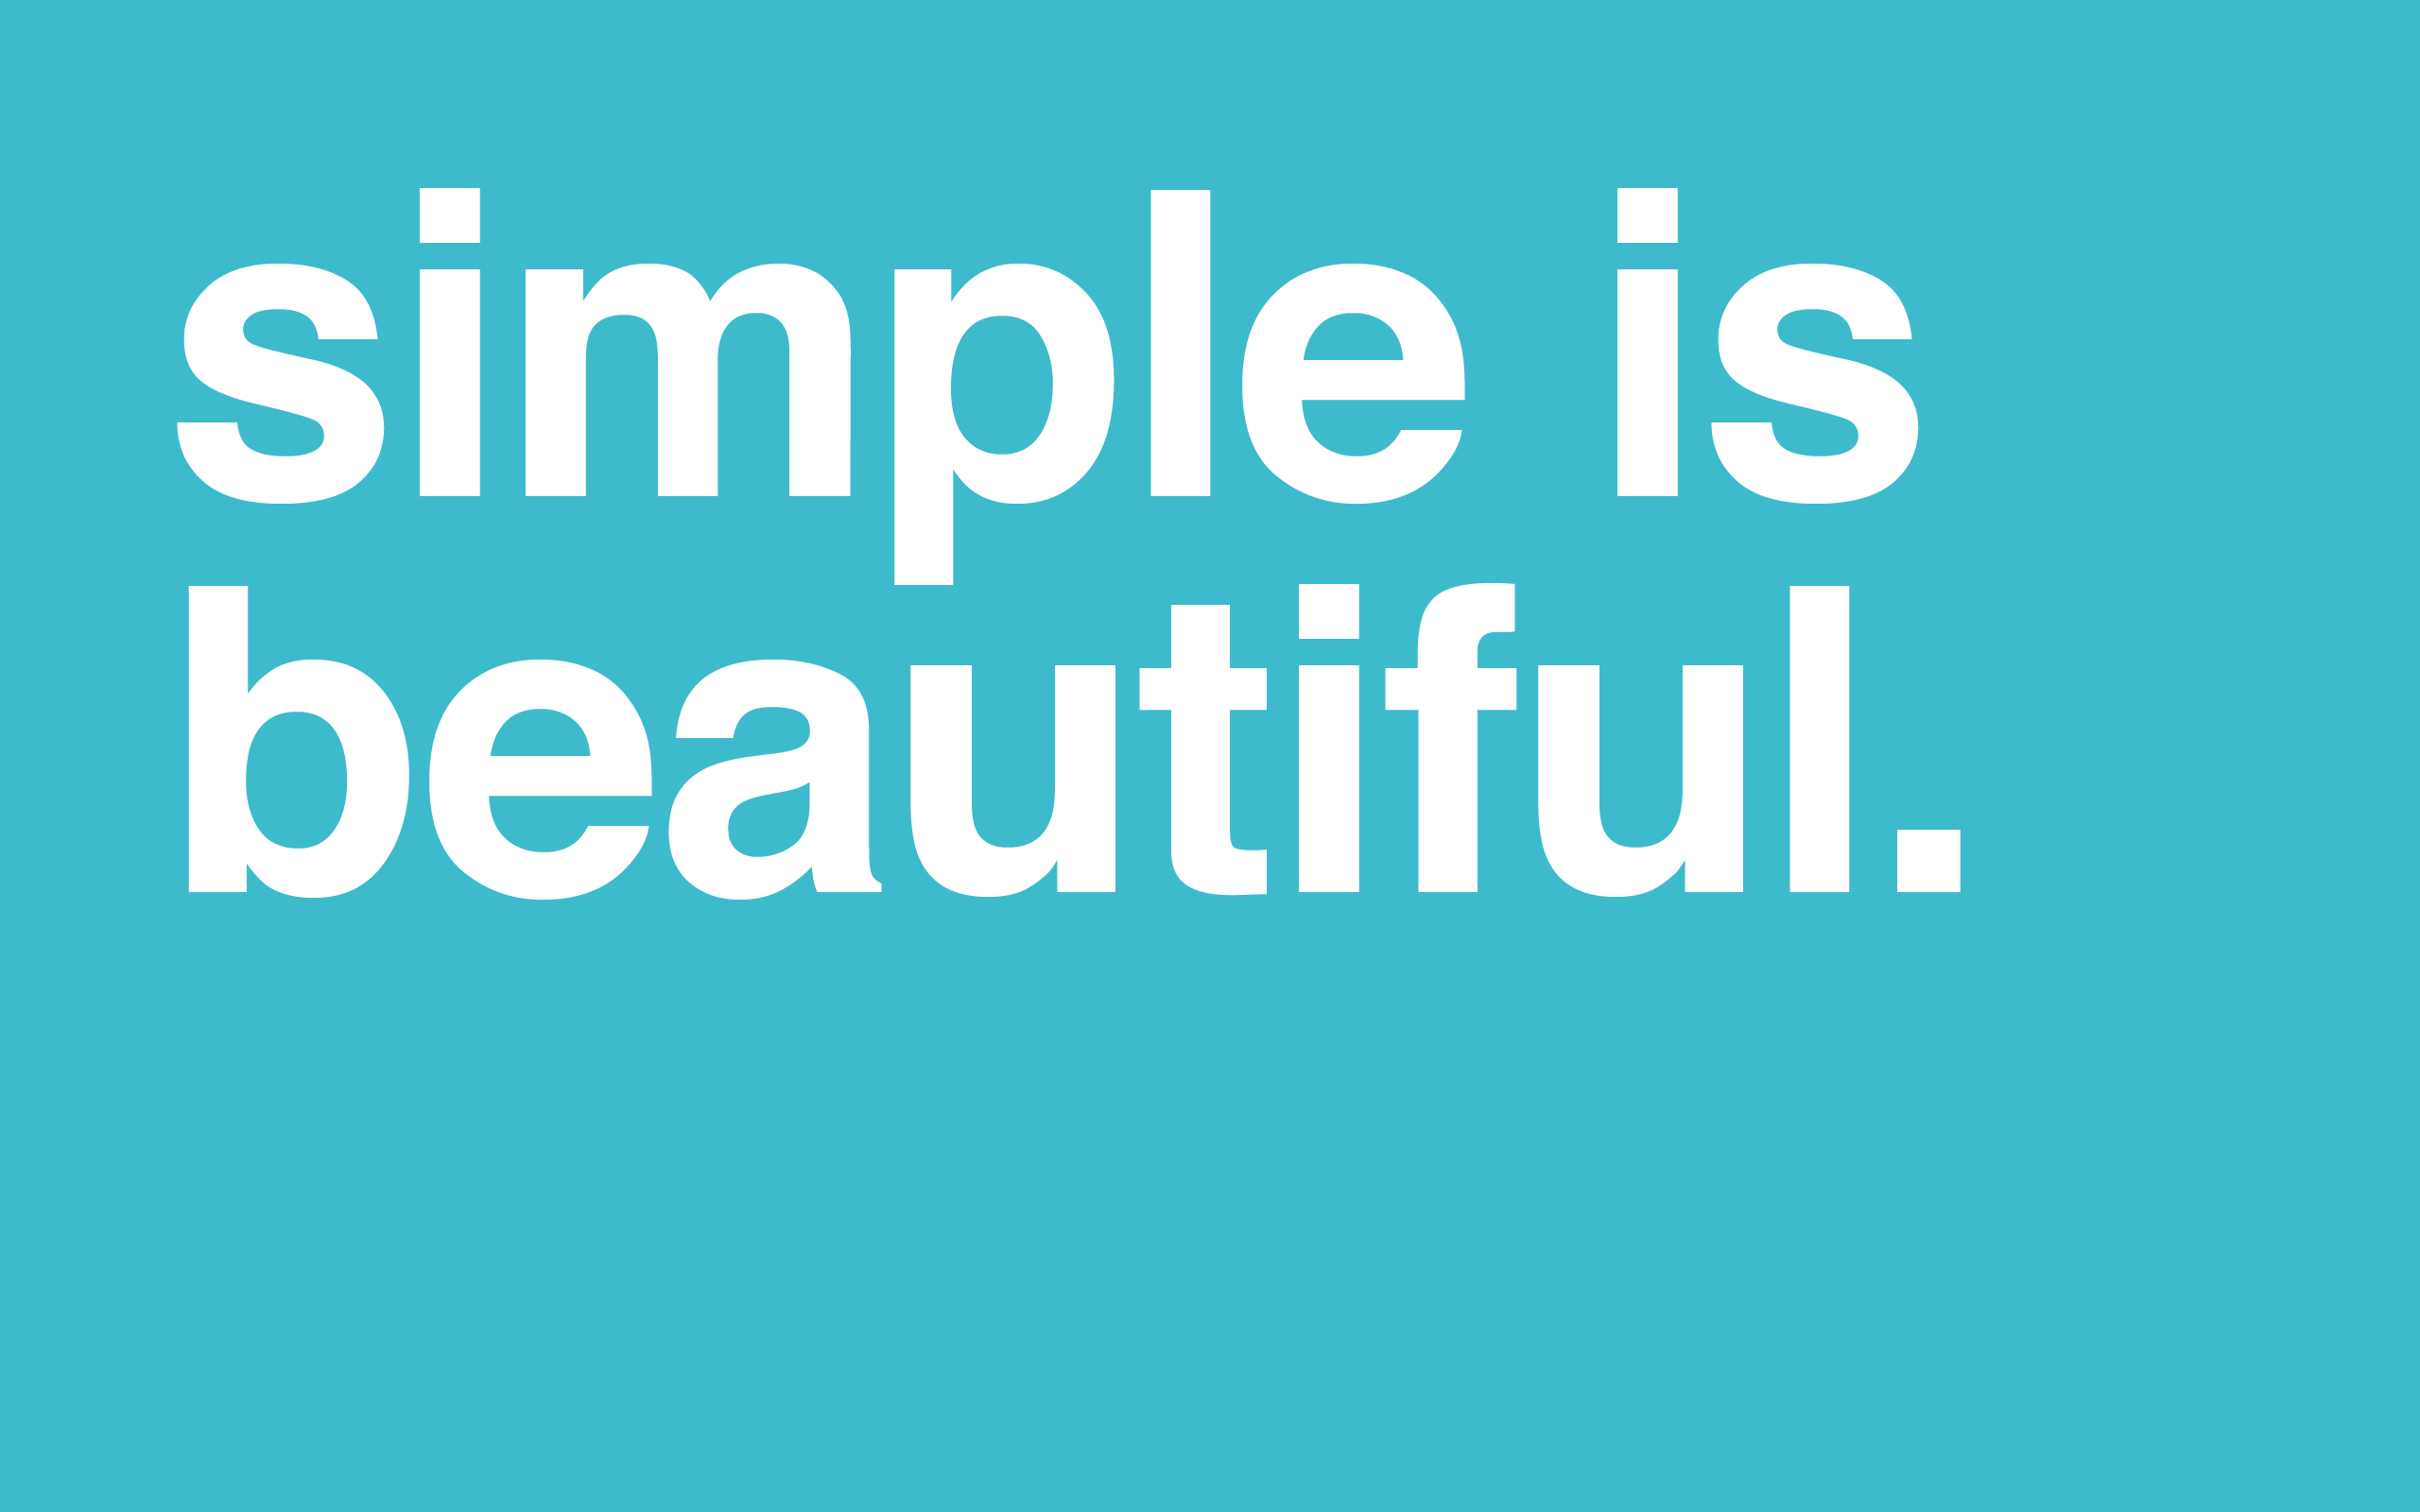 Simple-is-Beautiful-06-06-2011.png